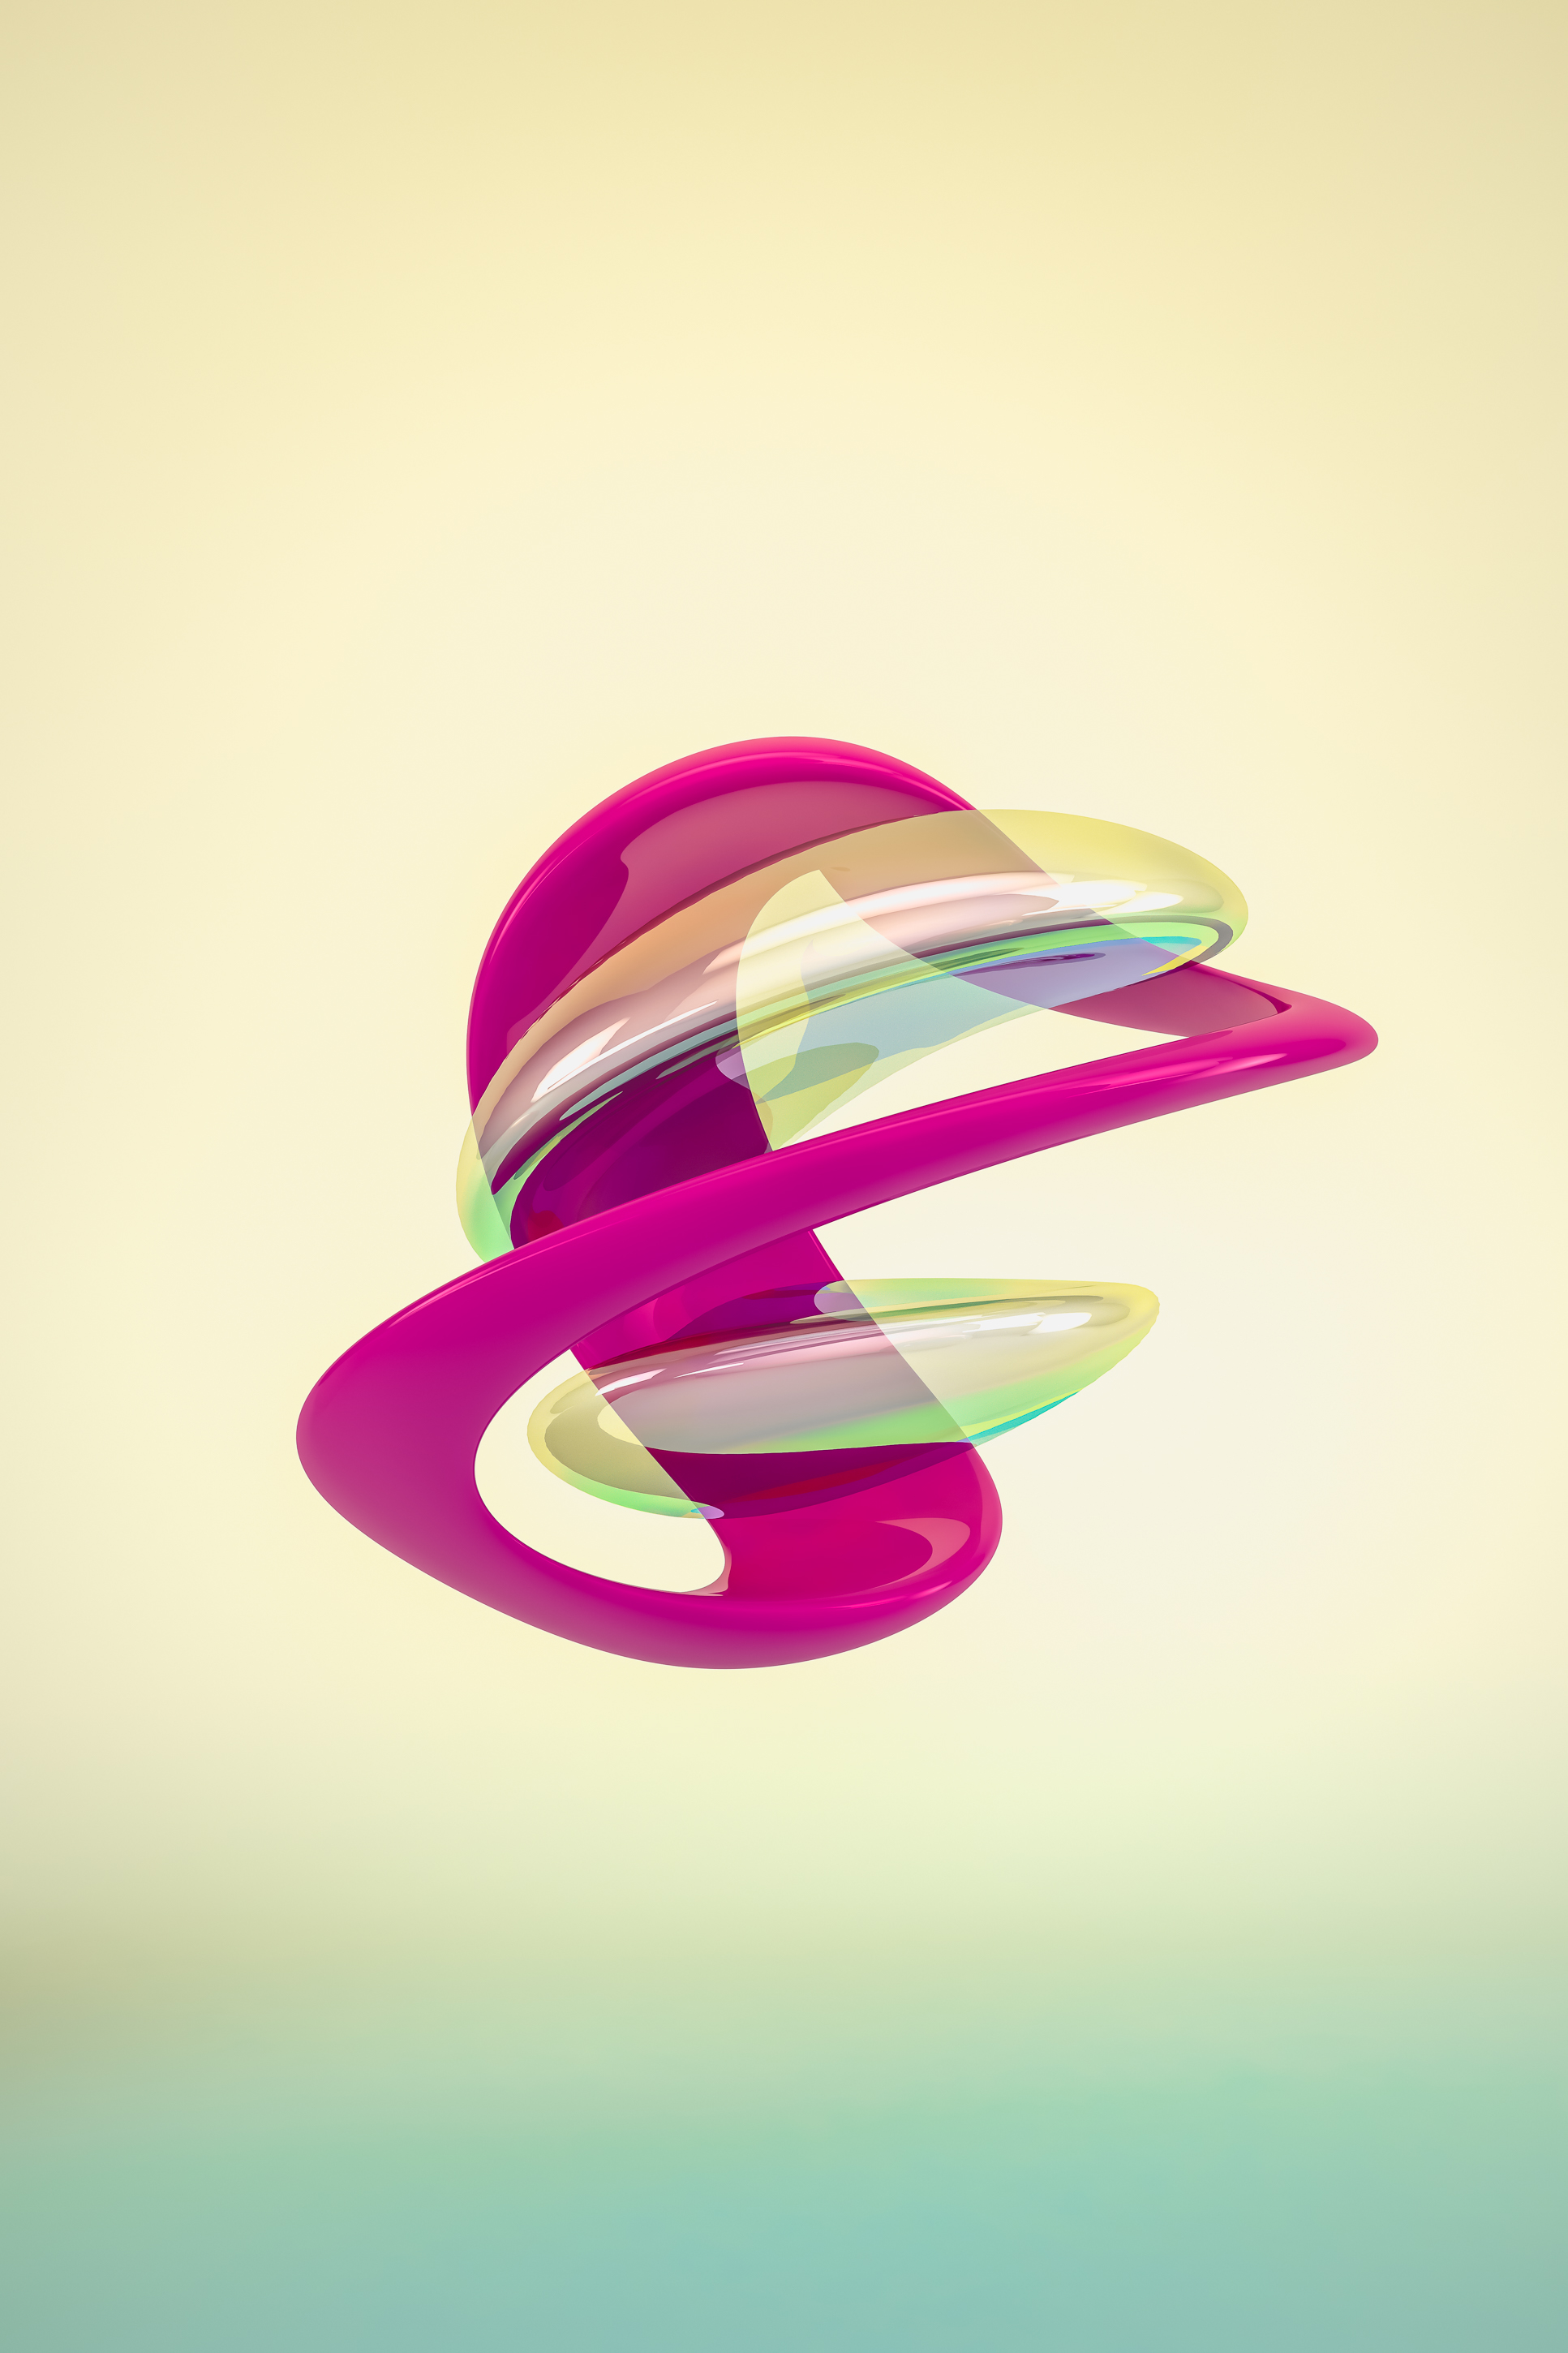 alban_guerry-suire_abstract_sculpture-001.jpg